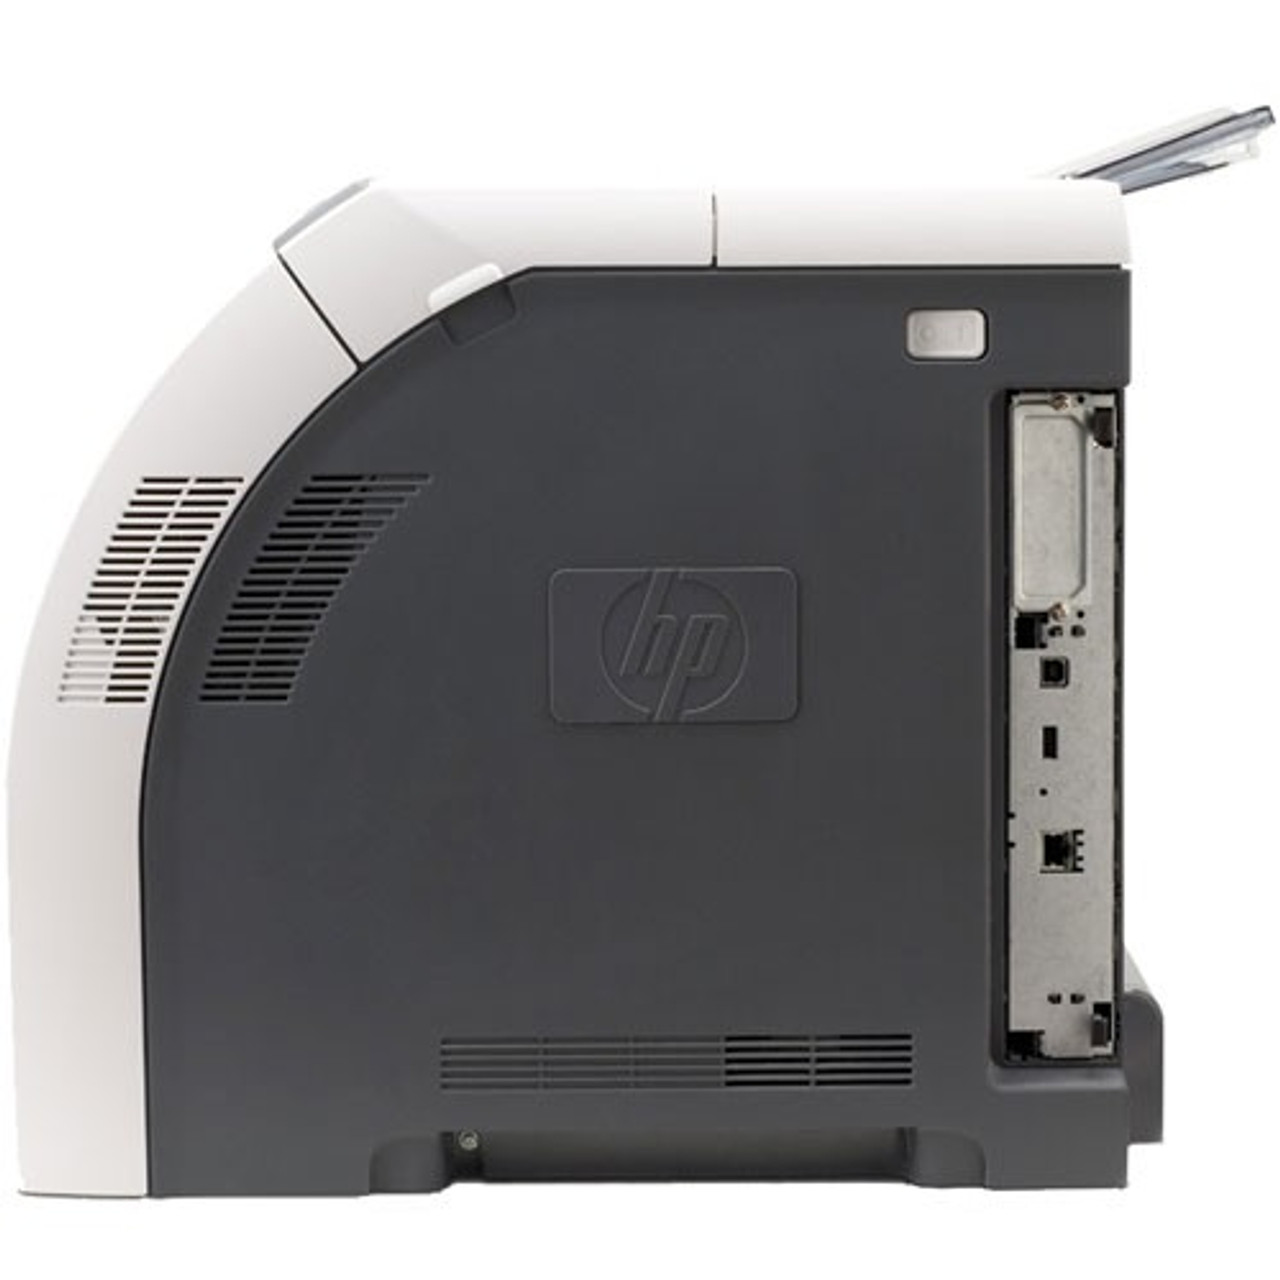 HP Color LaserJet 3800dn Color Laser printer -22 ppm -350 sheet